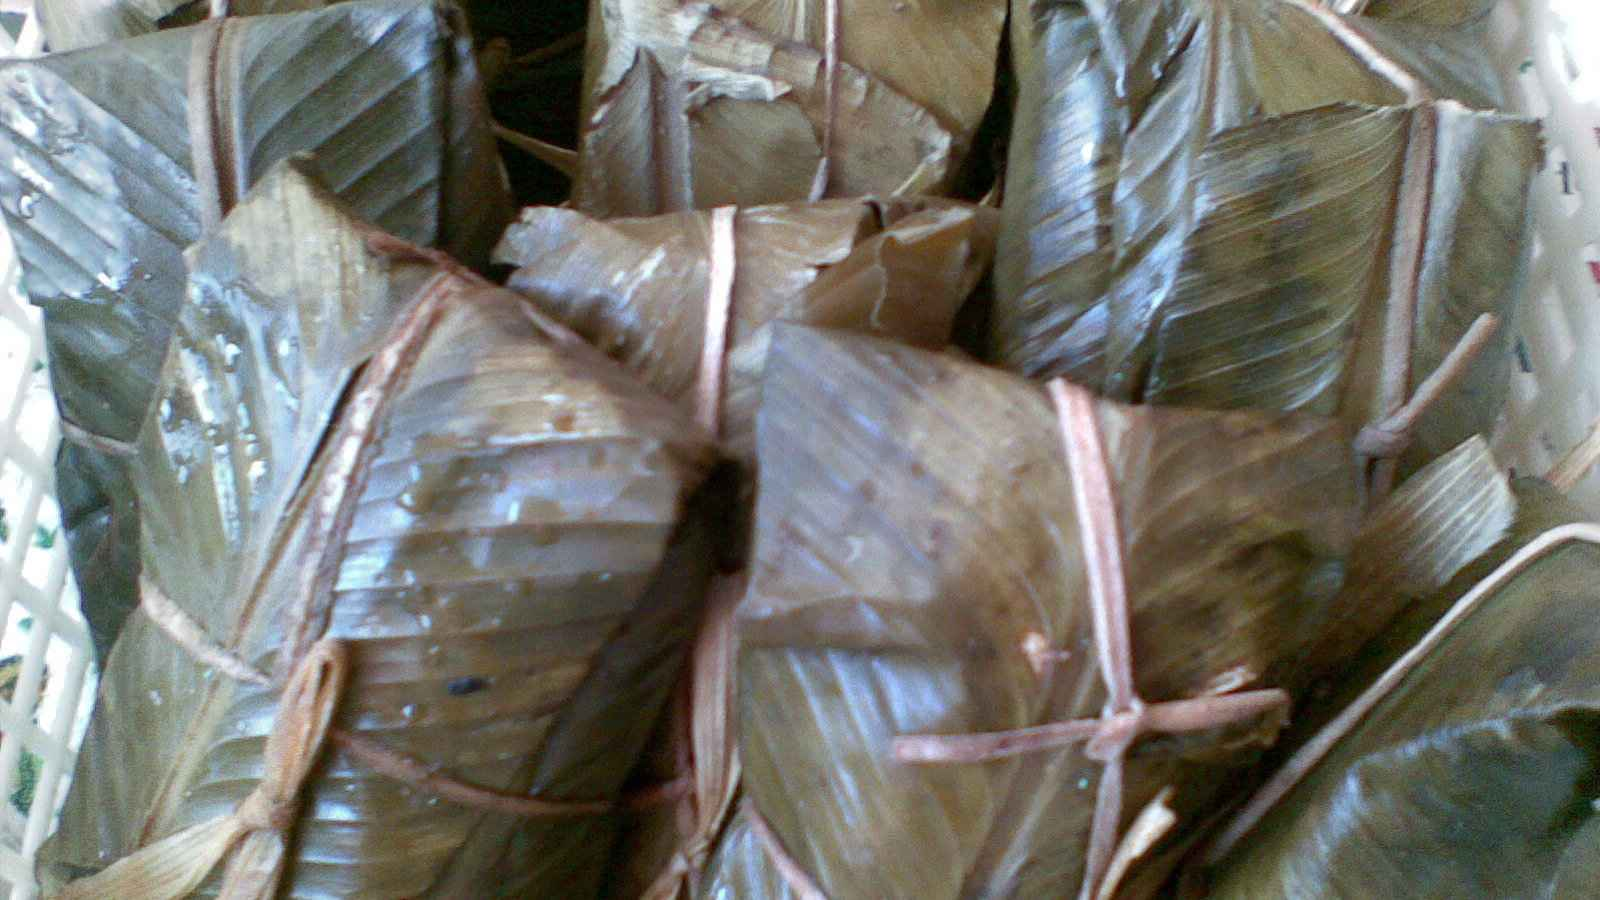 Colombian tamales are like the Mexican version, but with many variations throughout the country